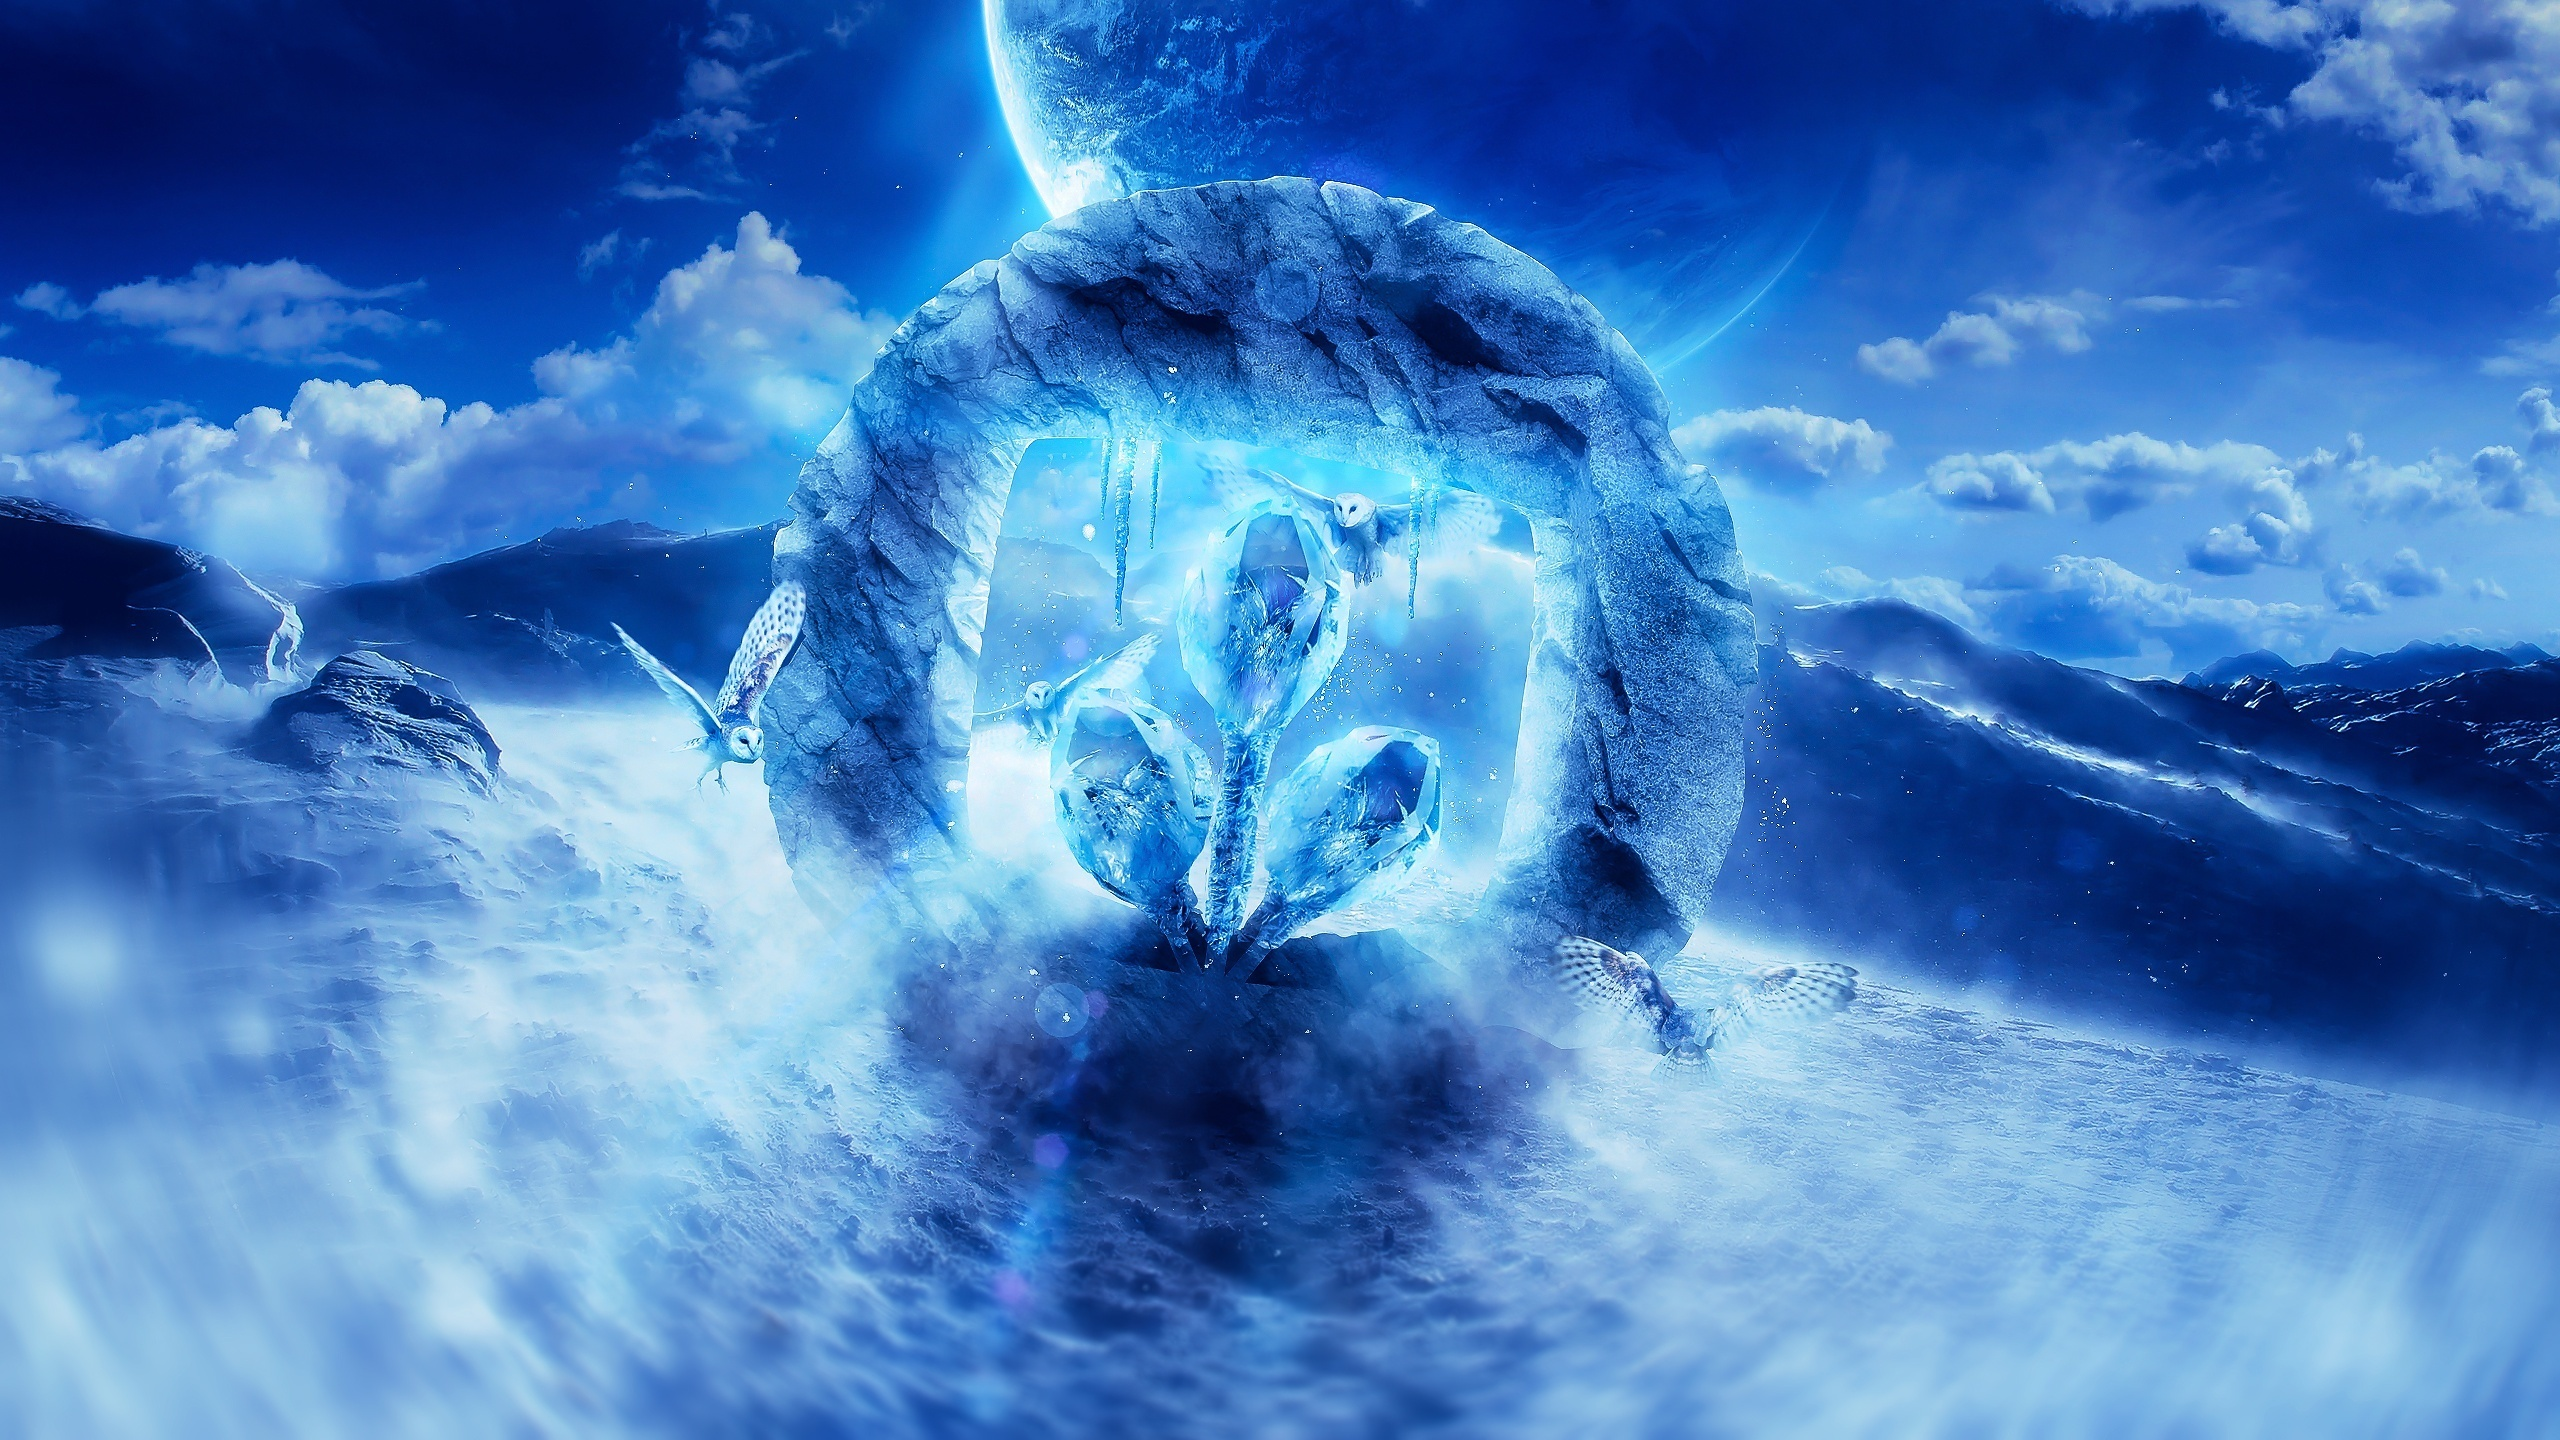 Desktopography logo, digital art, owl, planet, sea, blue